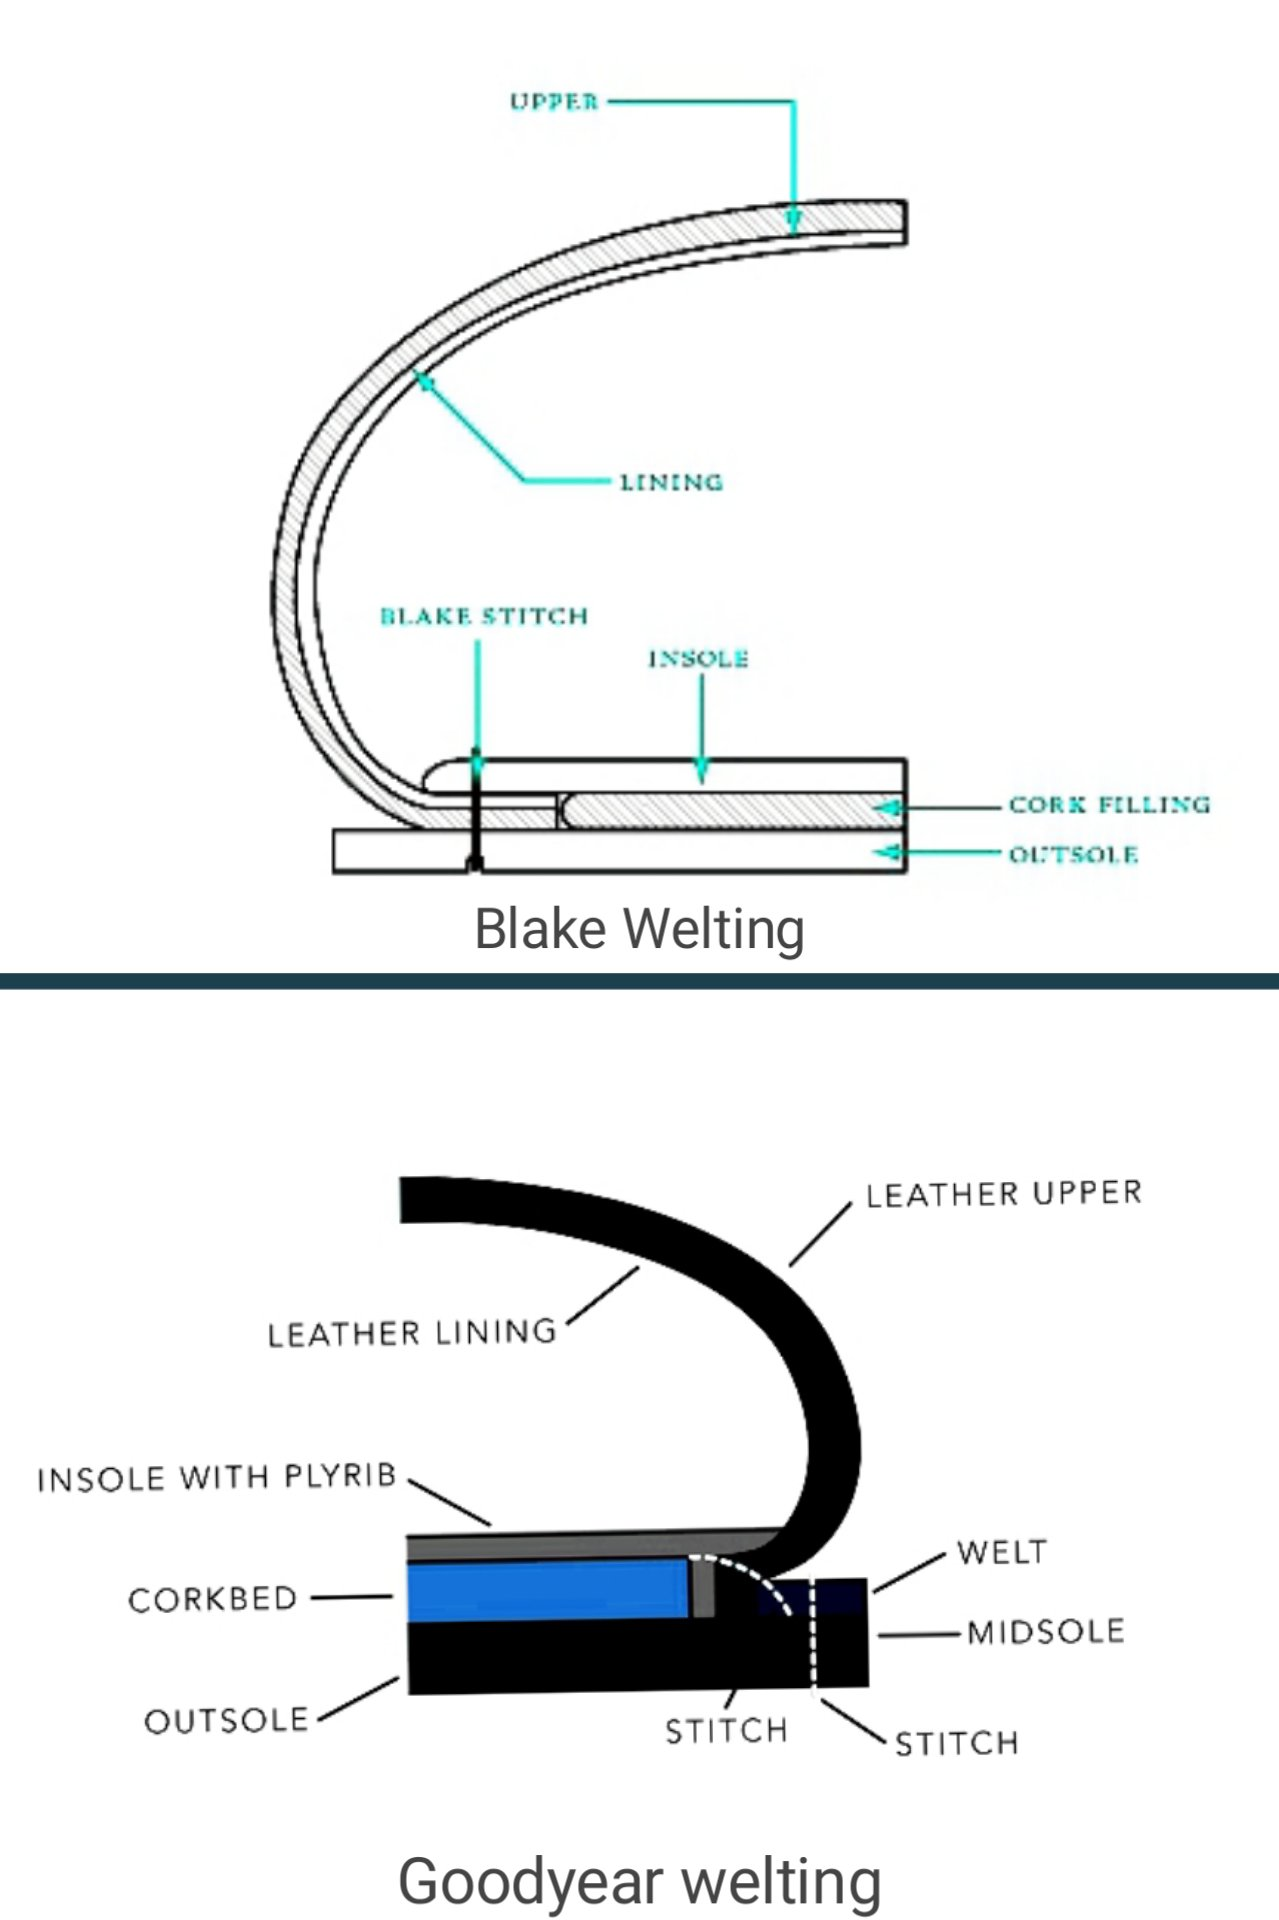 Types of shoe construction